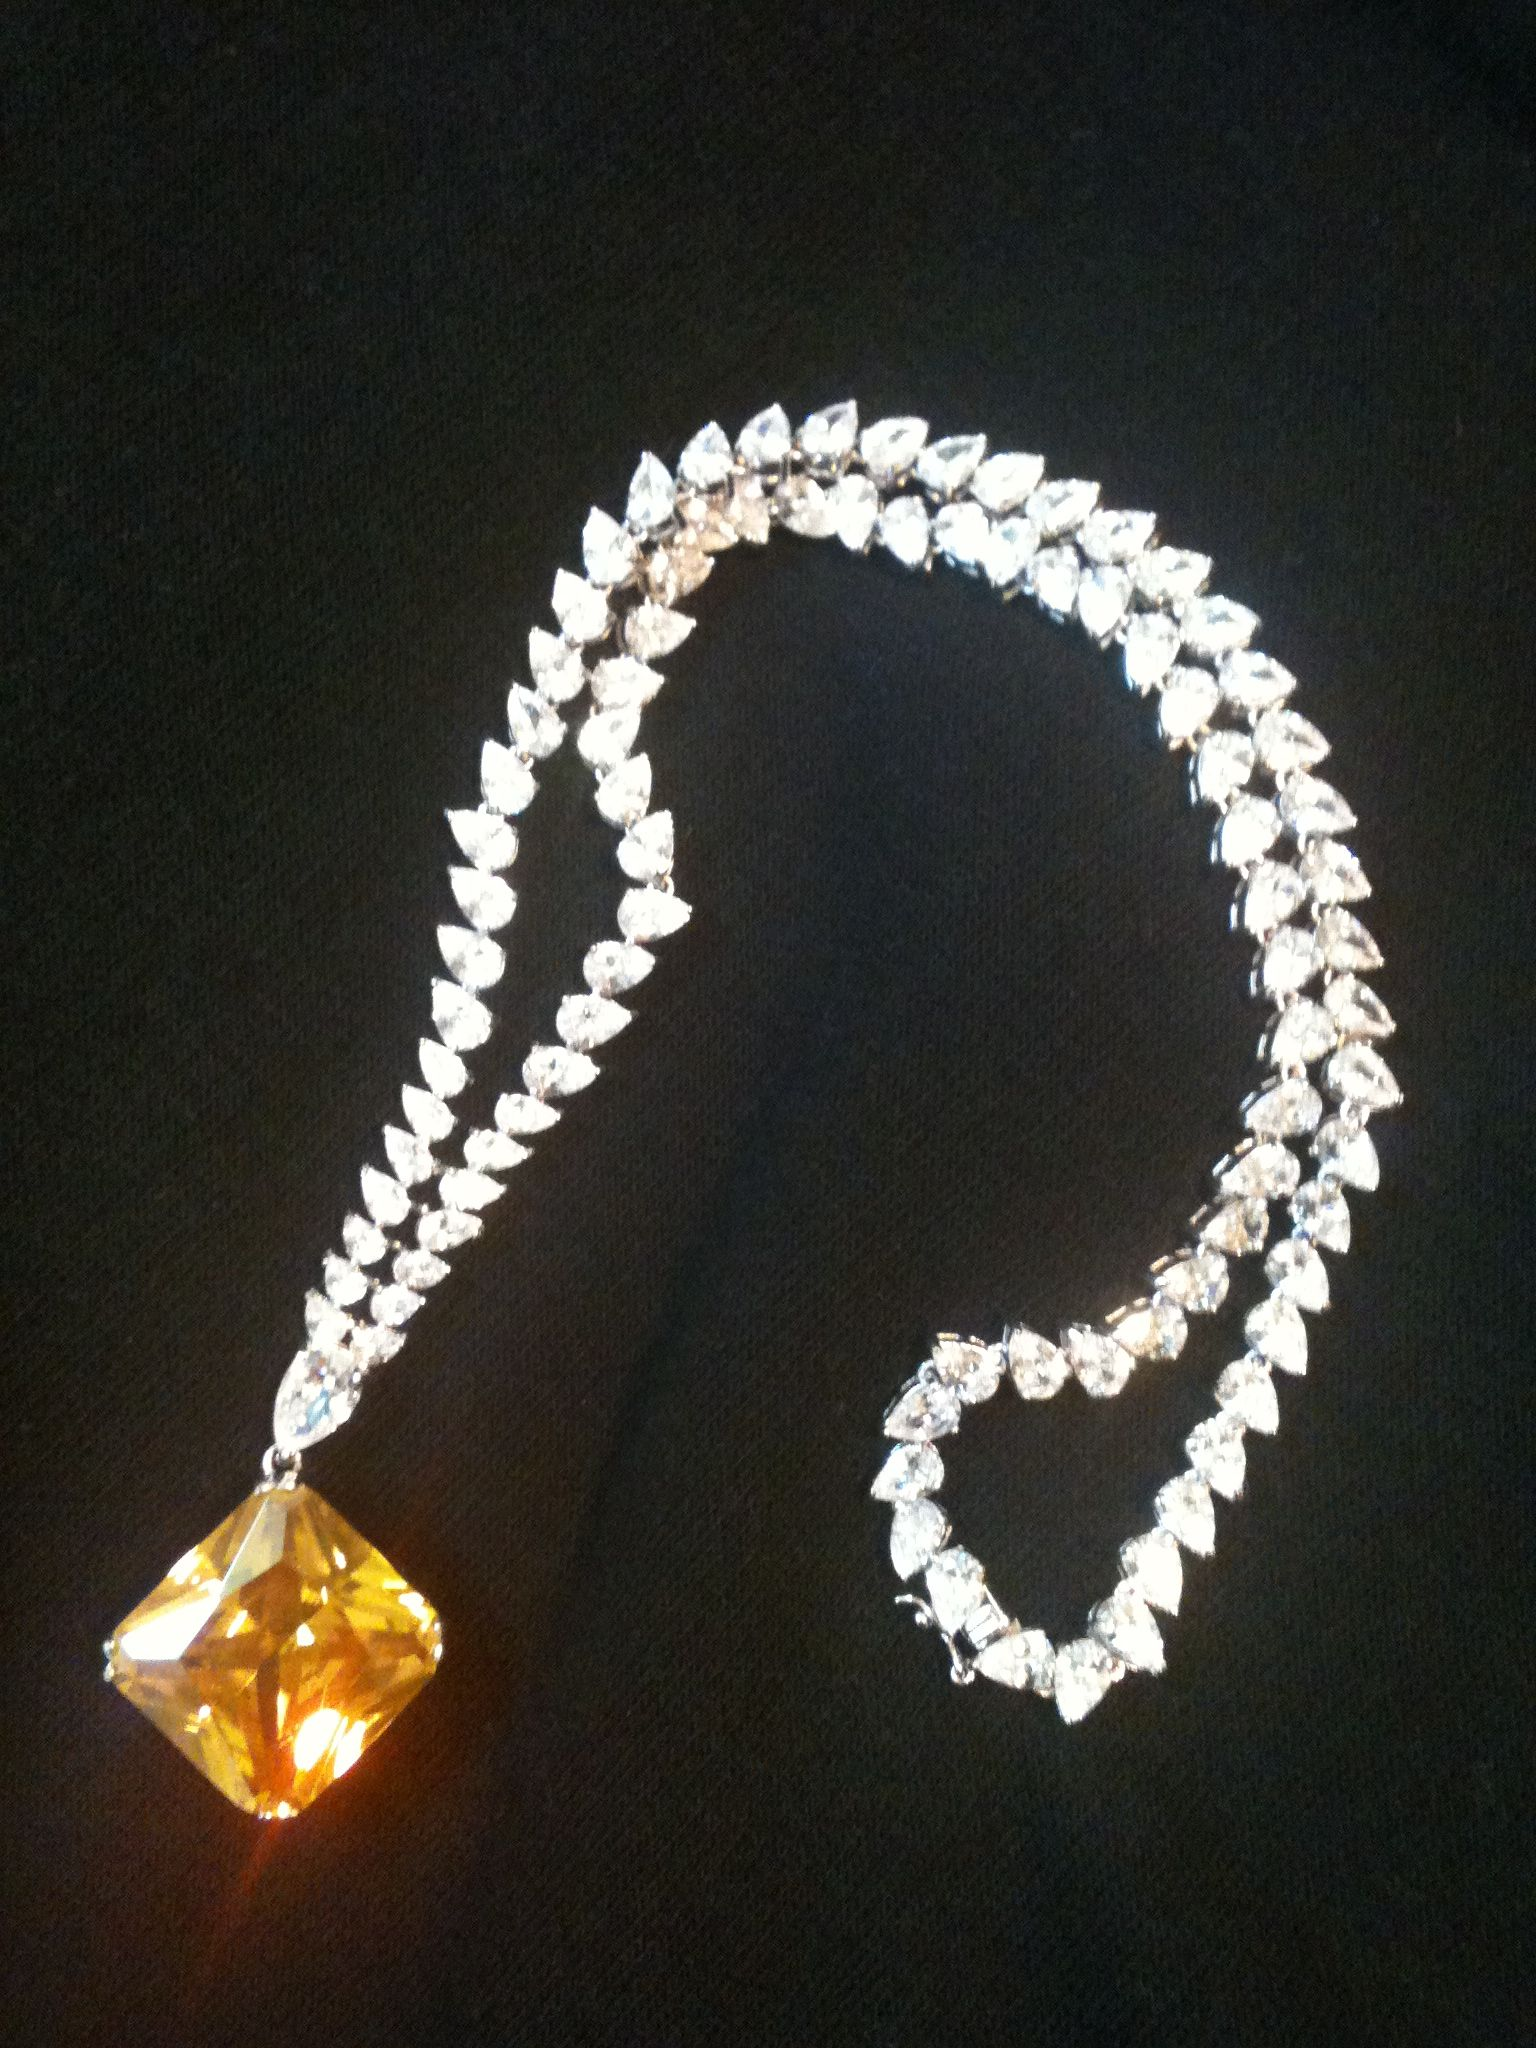 By requestmy replica of the isadora diamond like the